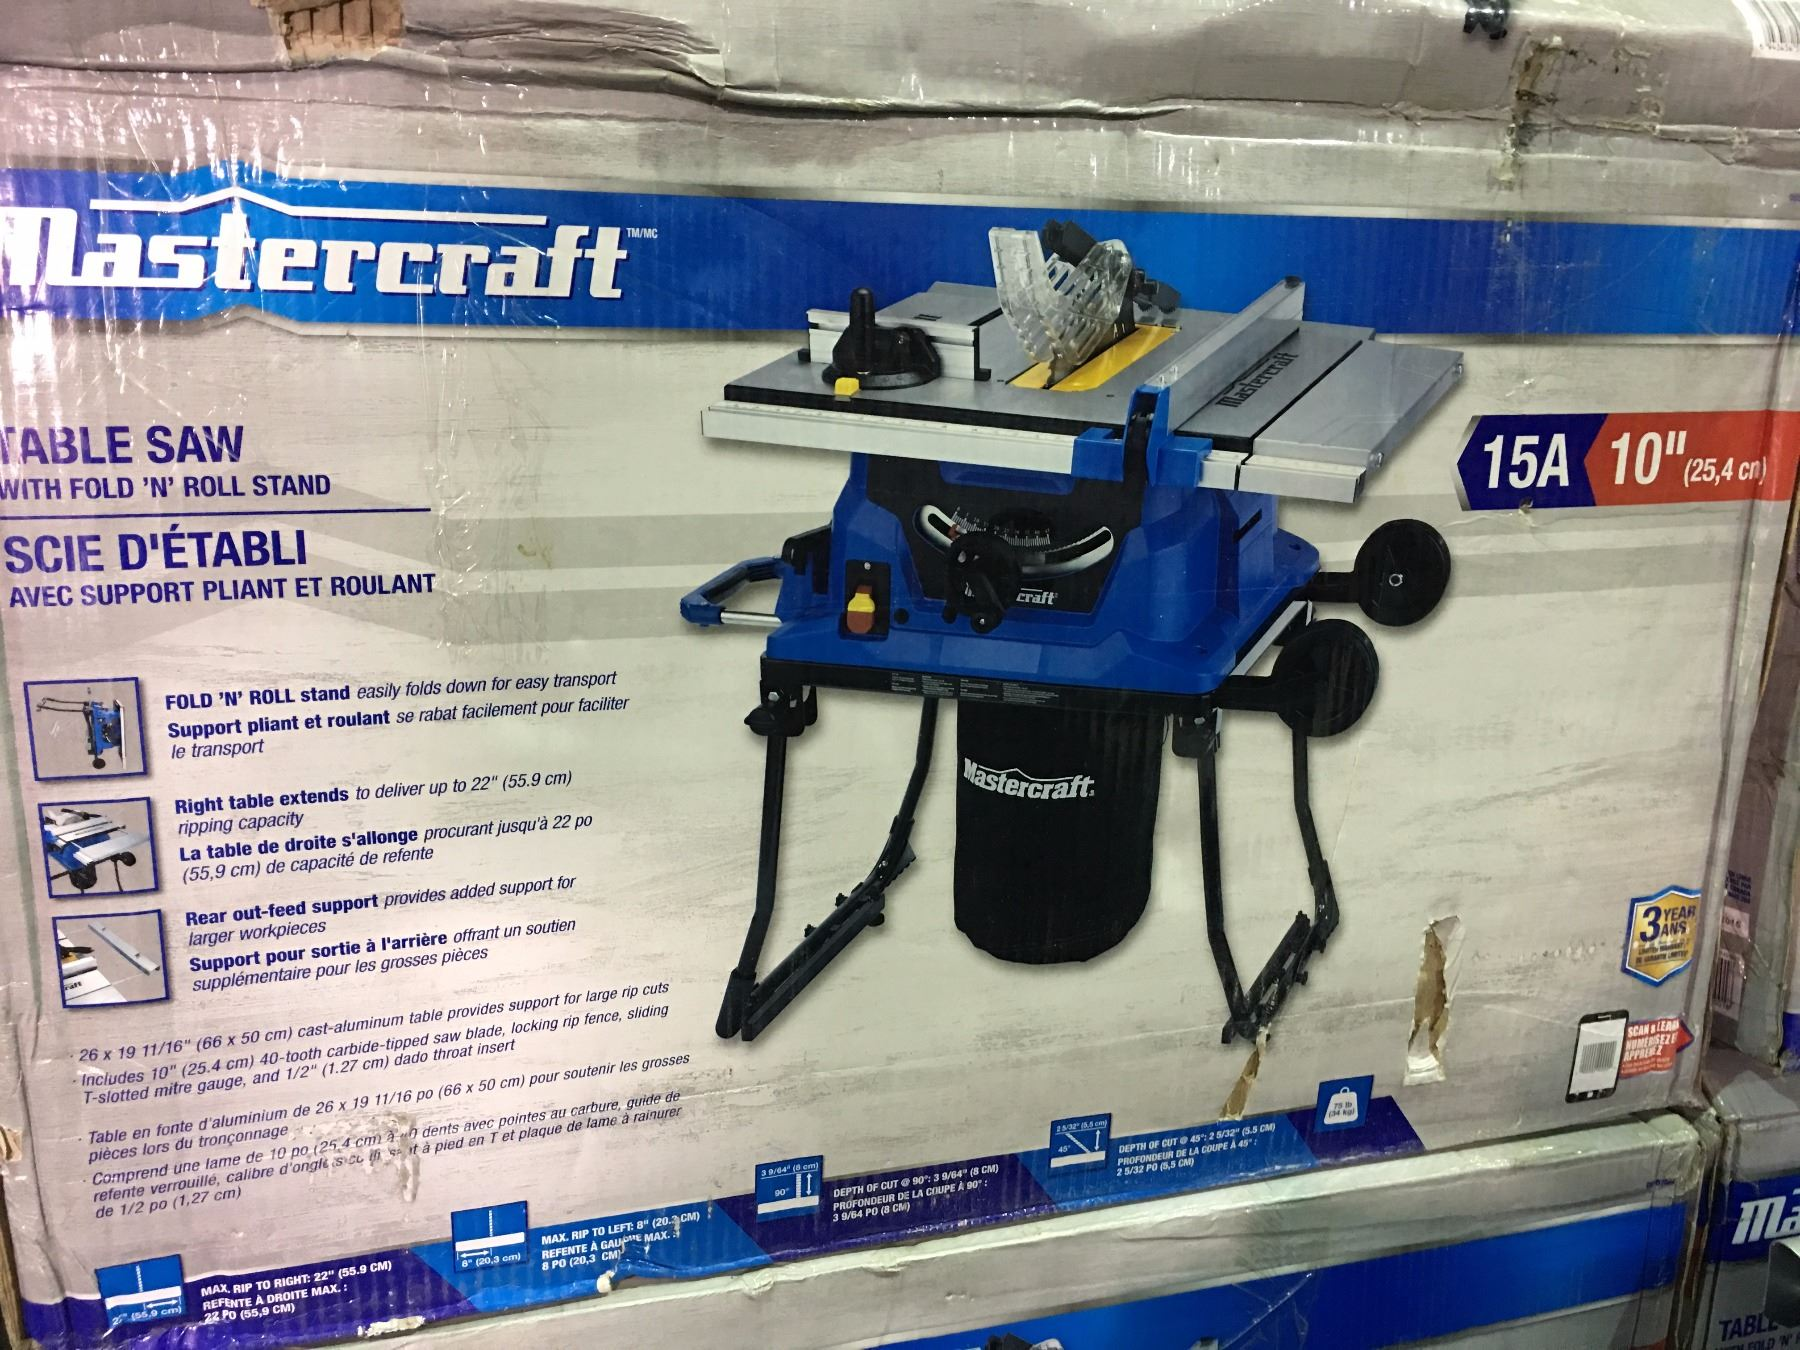 Mastercraft 1015amp table saw with fold roll stand image 2 mastercraft 1015amp table saw with fold roll stand keyboard keysfo Gallery